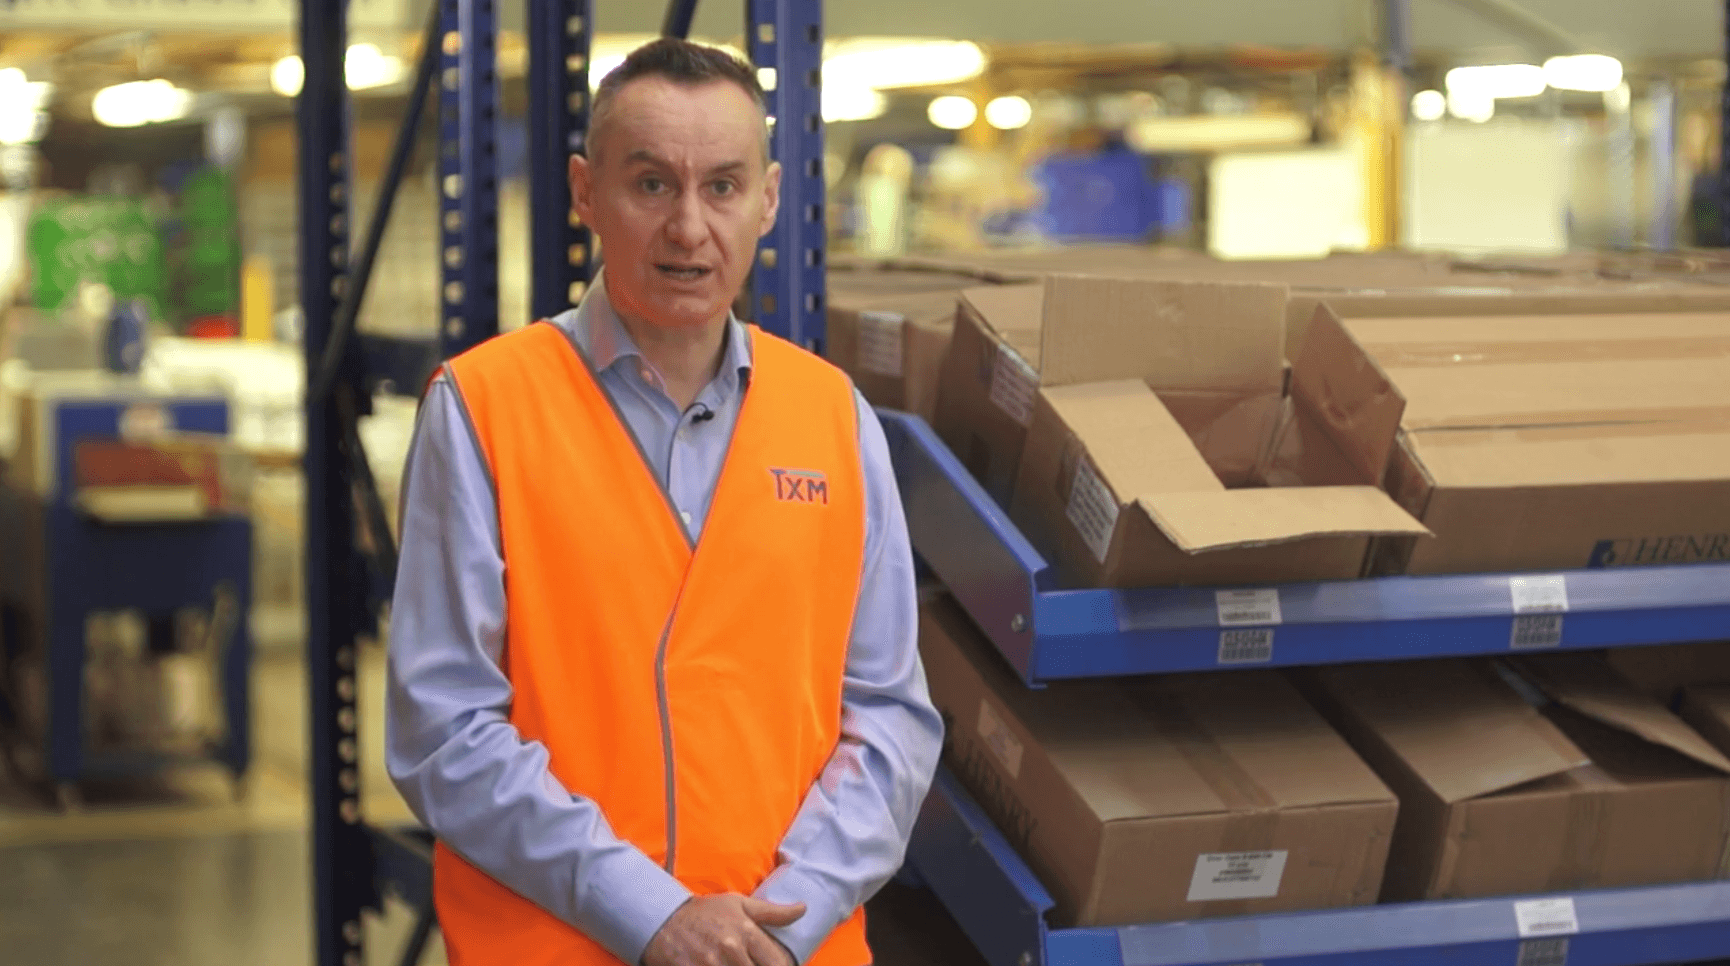 TXM Lean Minute Video – The Most Effective Warehouse Management Technology